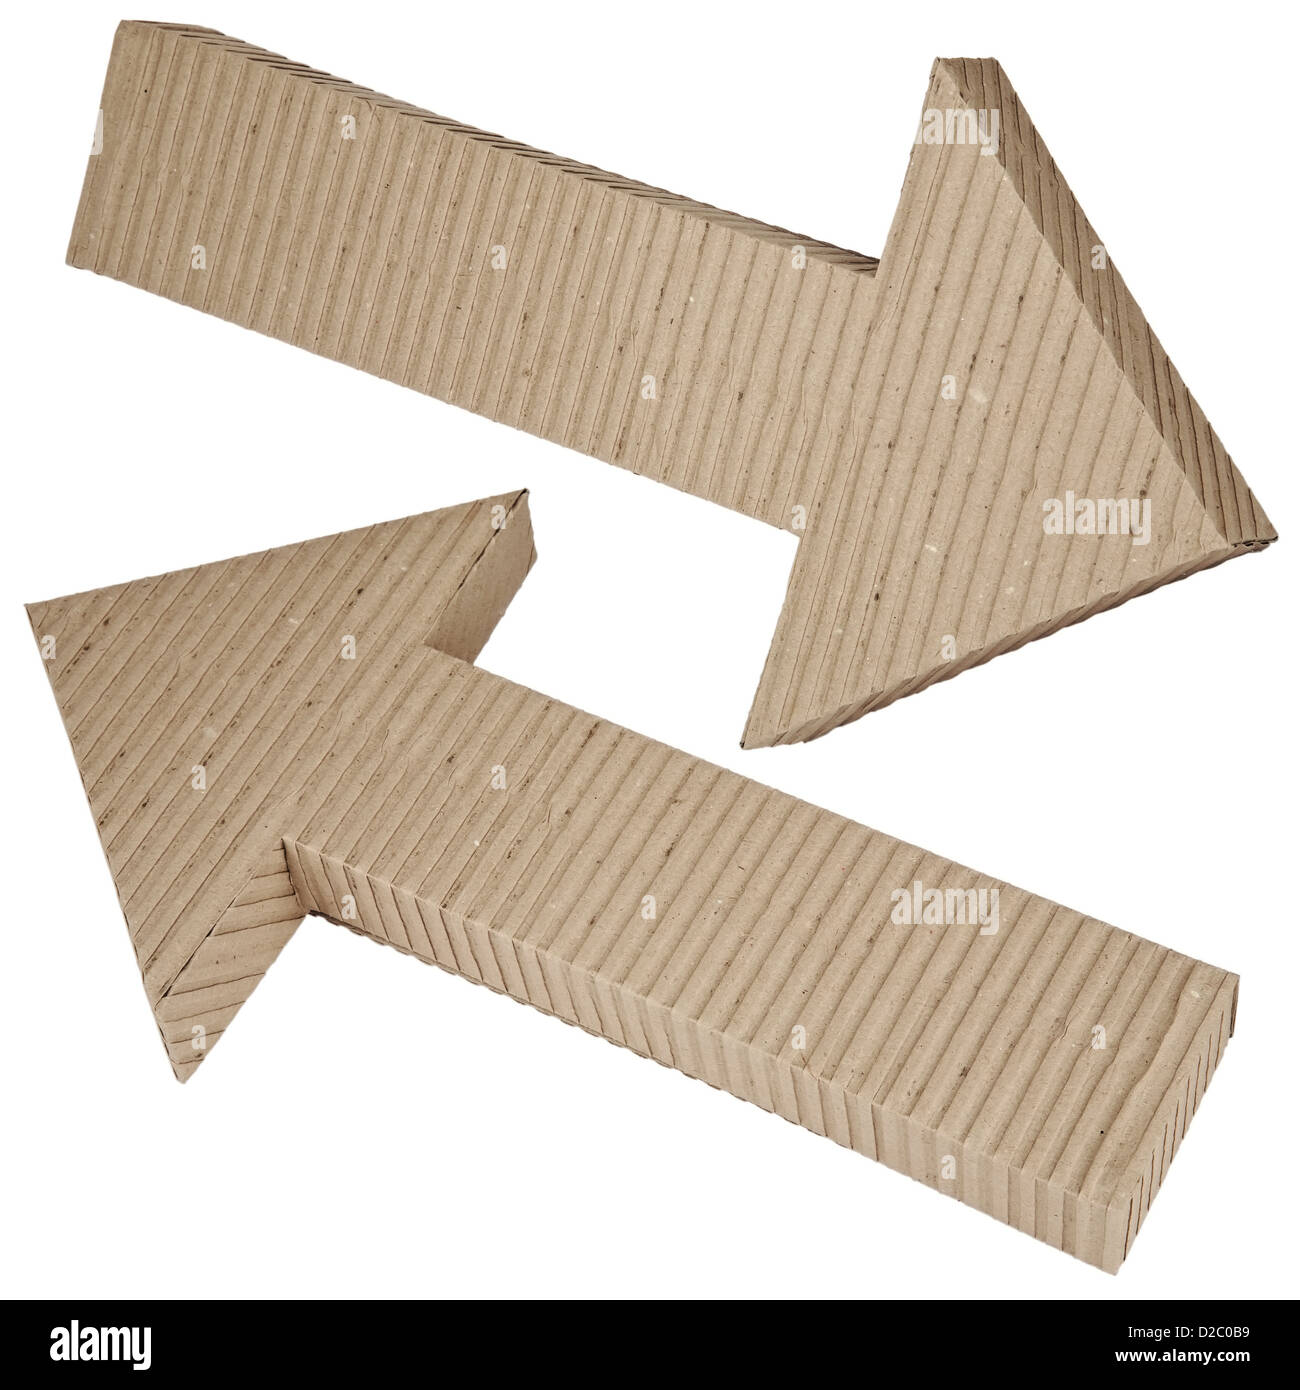 Corrugated Cardboard Arrow Pointing Upwards And The Left And